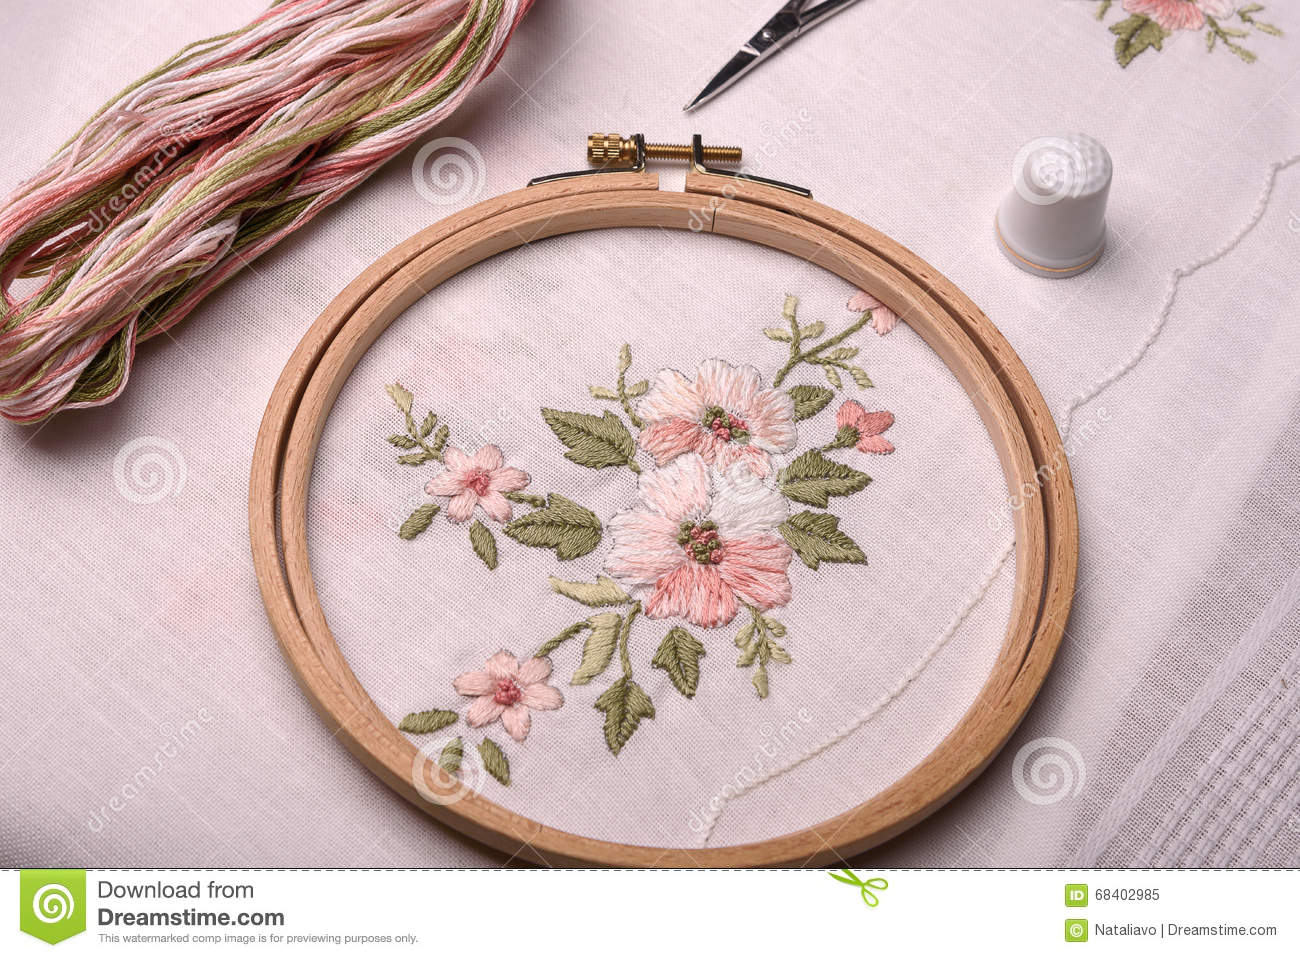 Forgotten Craft Embroidery The Cloth Thread Needle Thimble